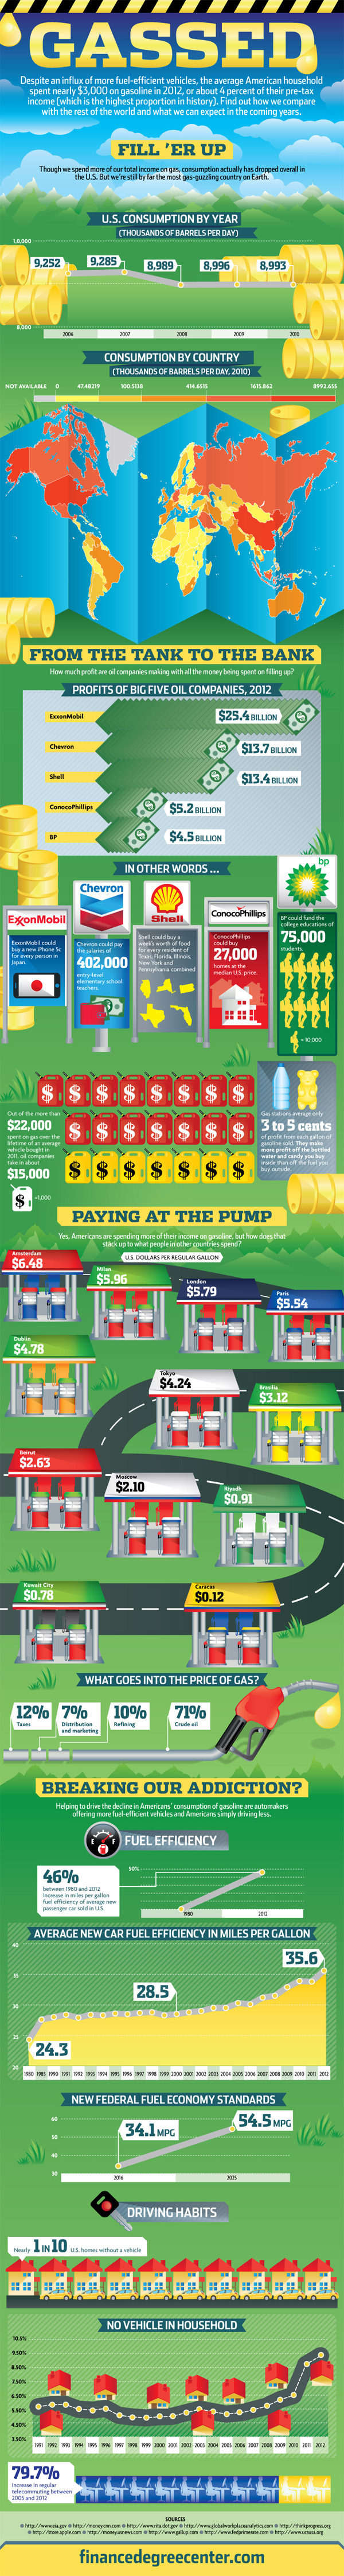 Gasoline Consumption in the US-Infographic